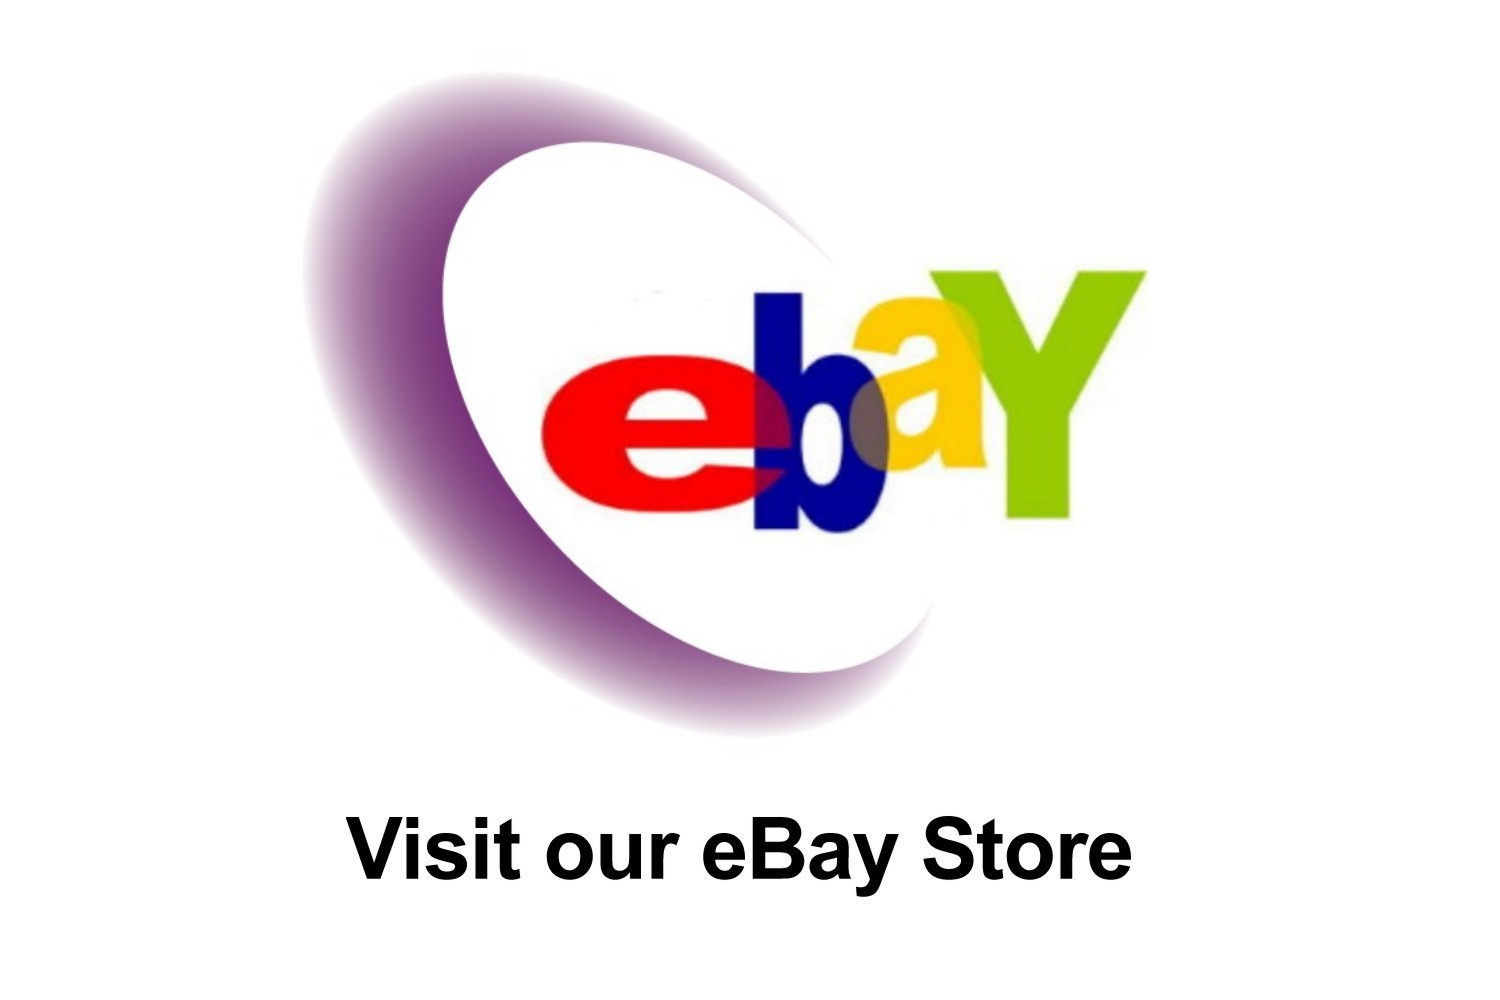 See our Ebay Listings